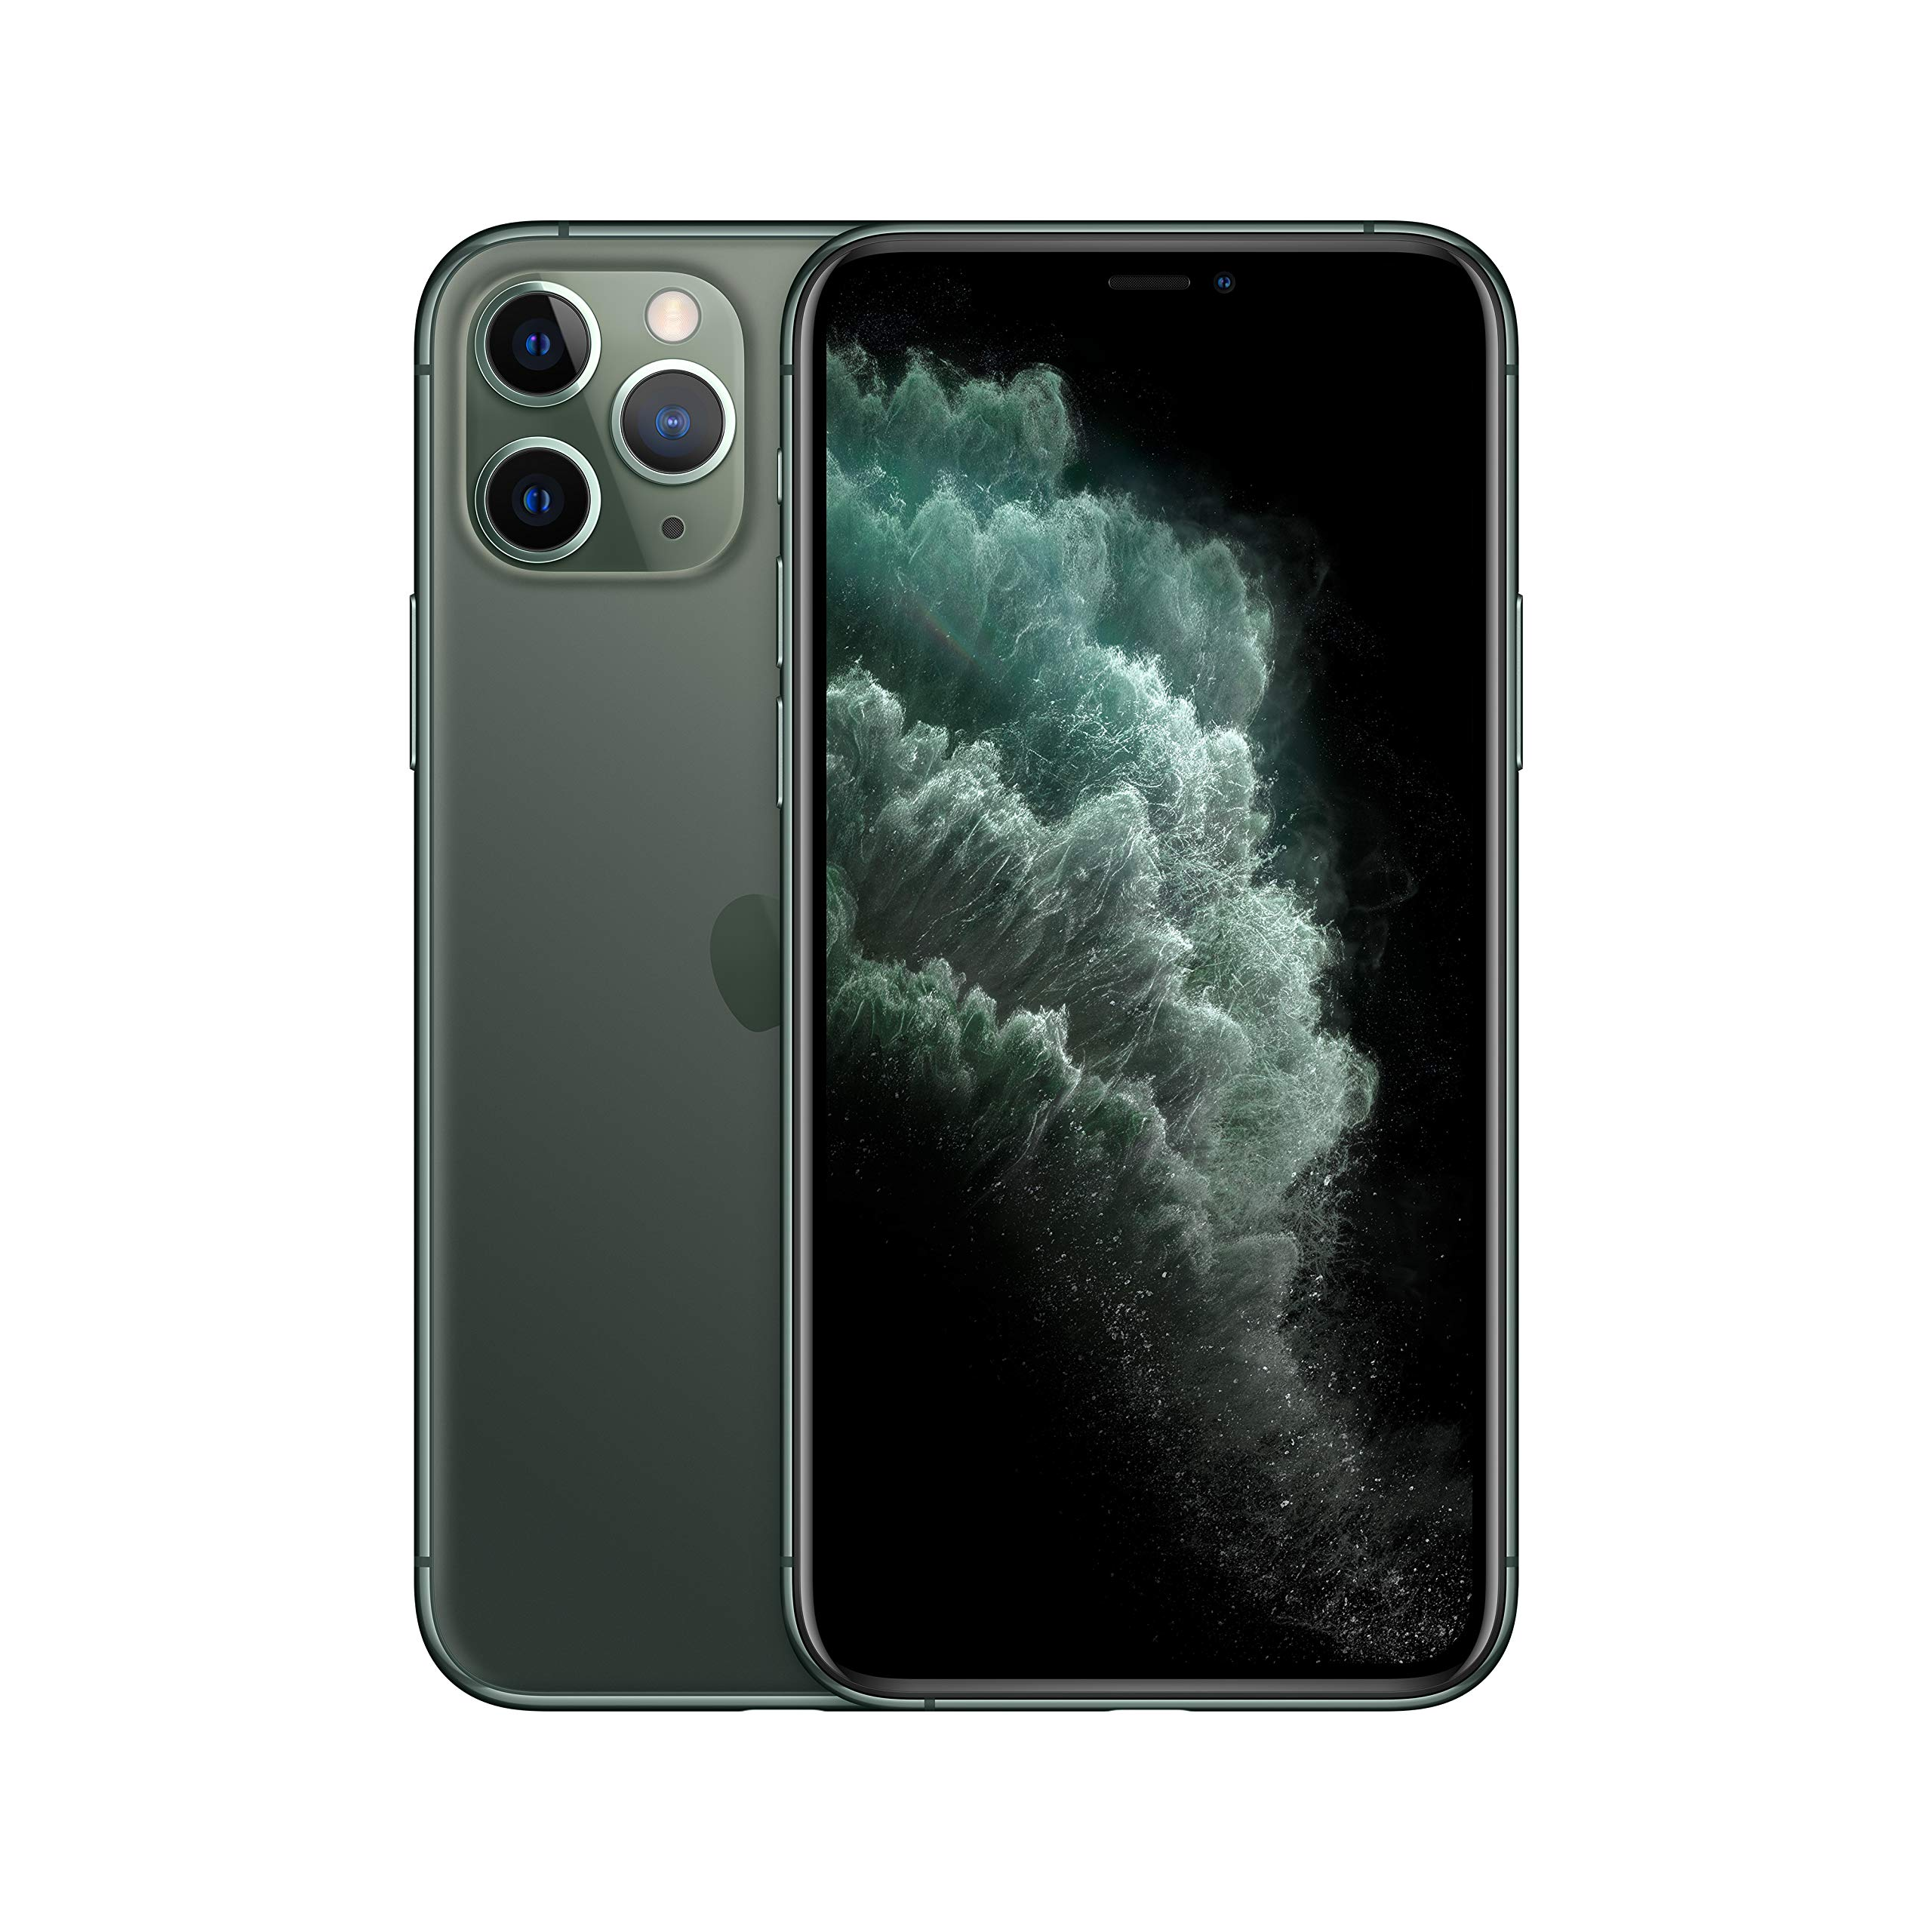 Apple iPhone 11 Pro [64GB, Midnight Green] + Carrier Subscription [Cricket Wireless]